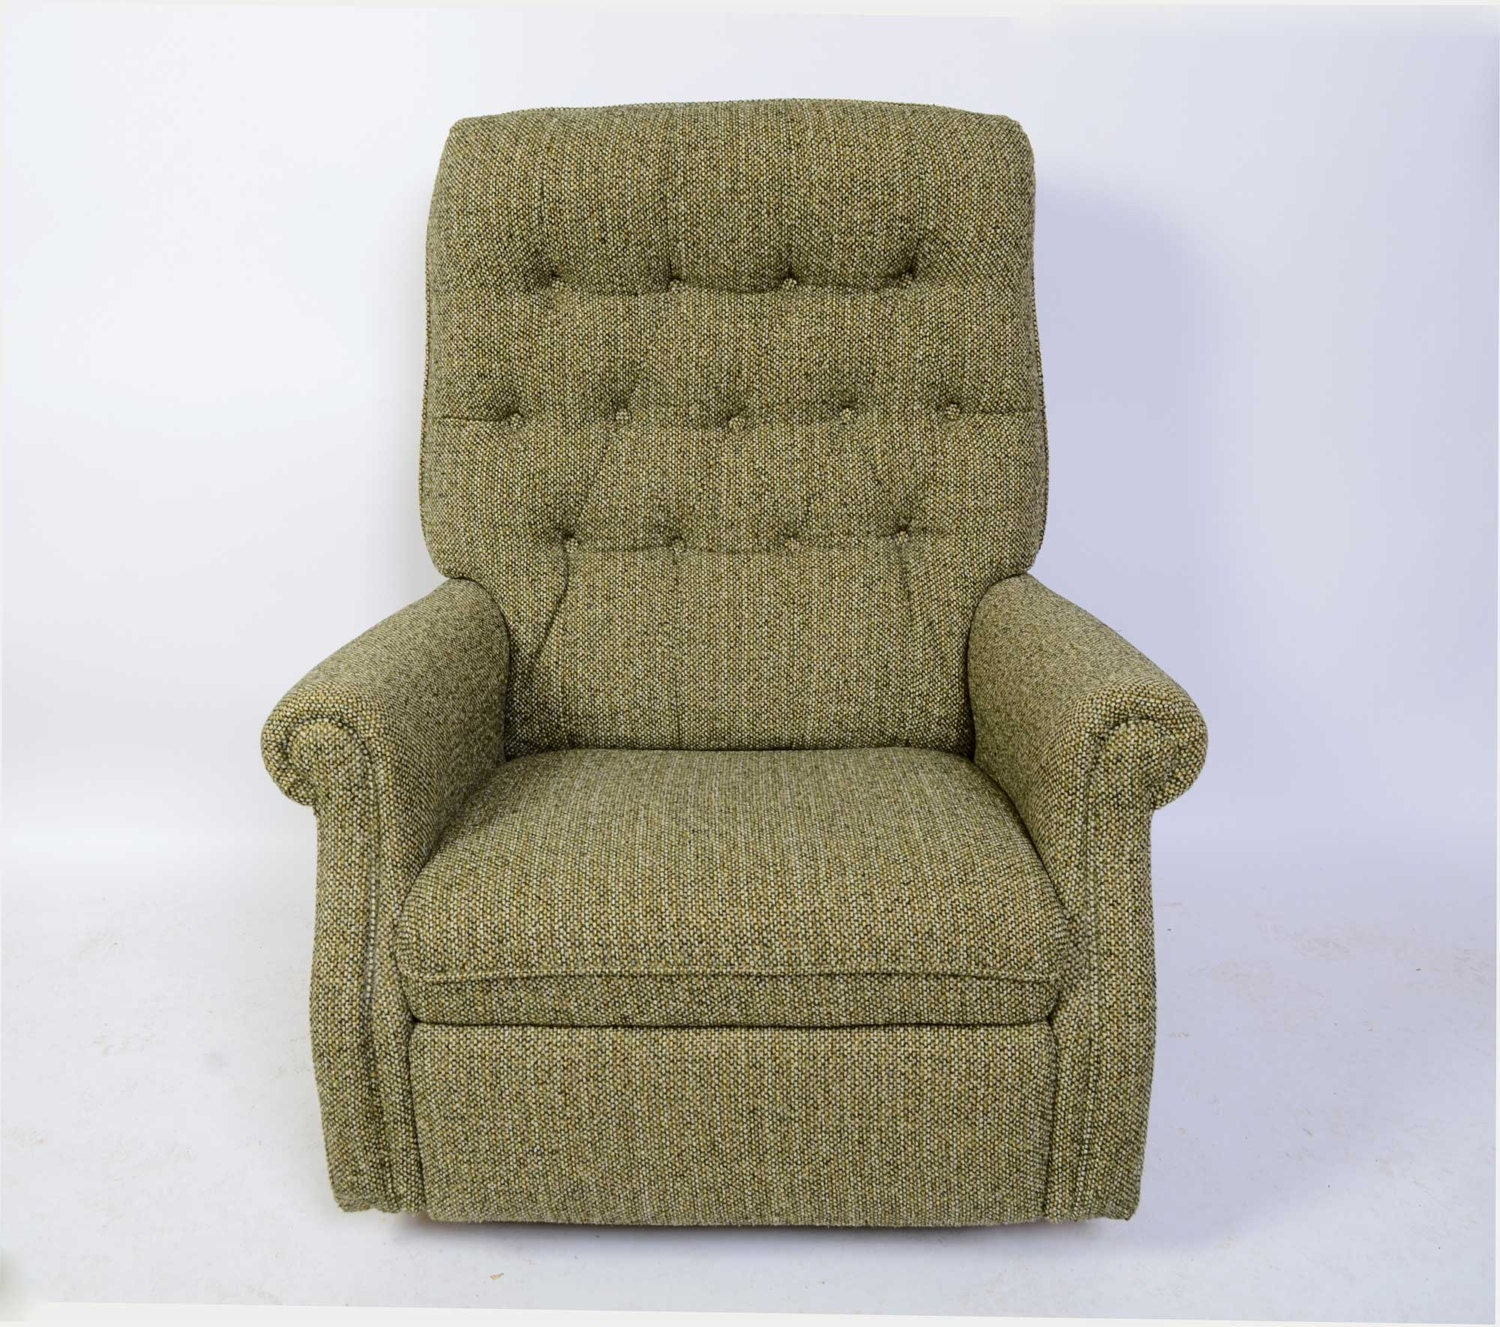 Lazy Boy Recliner Recliner 1970 Mid Century Reading Chair